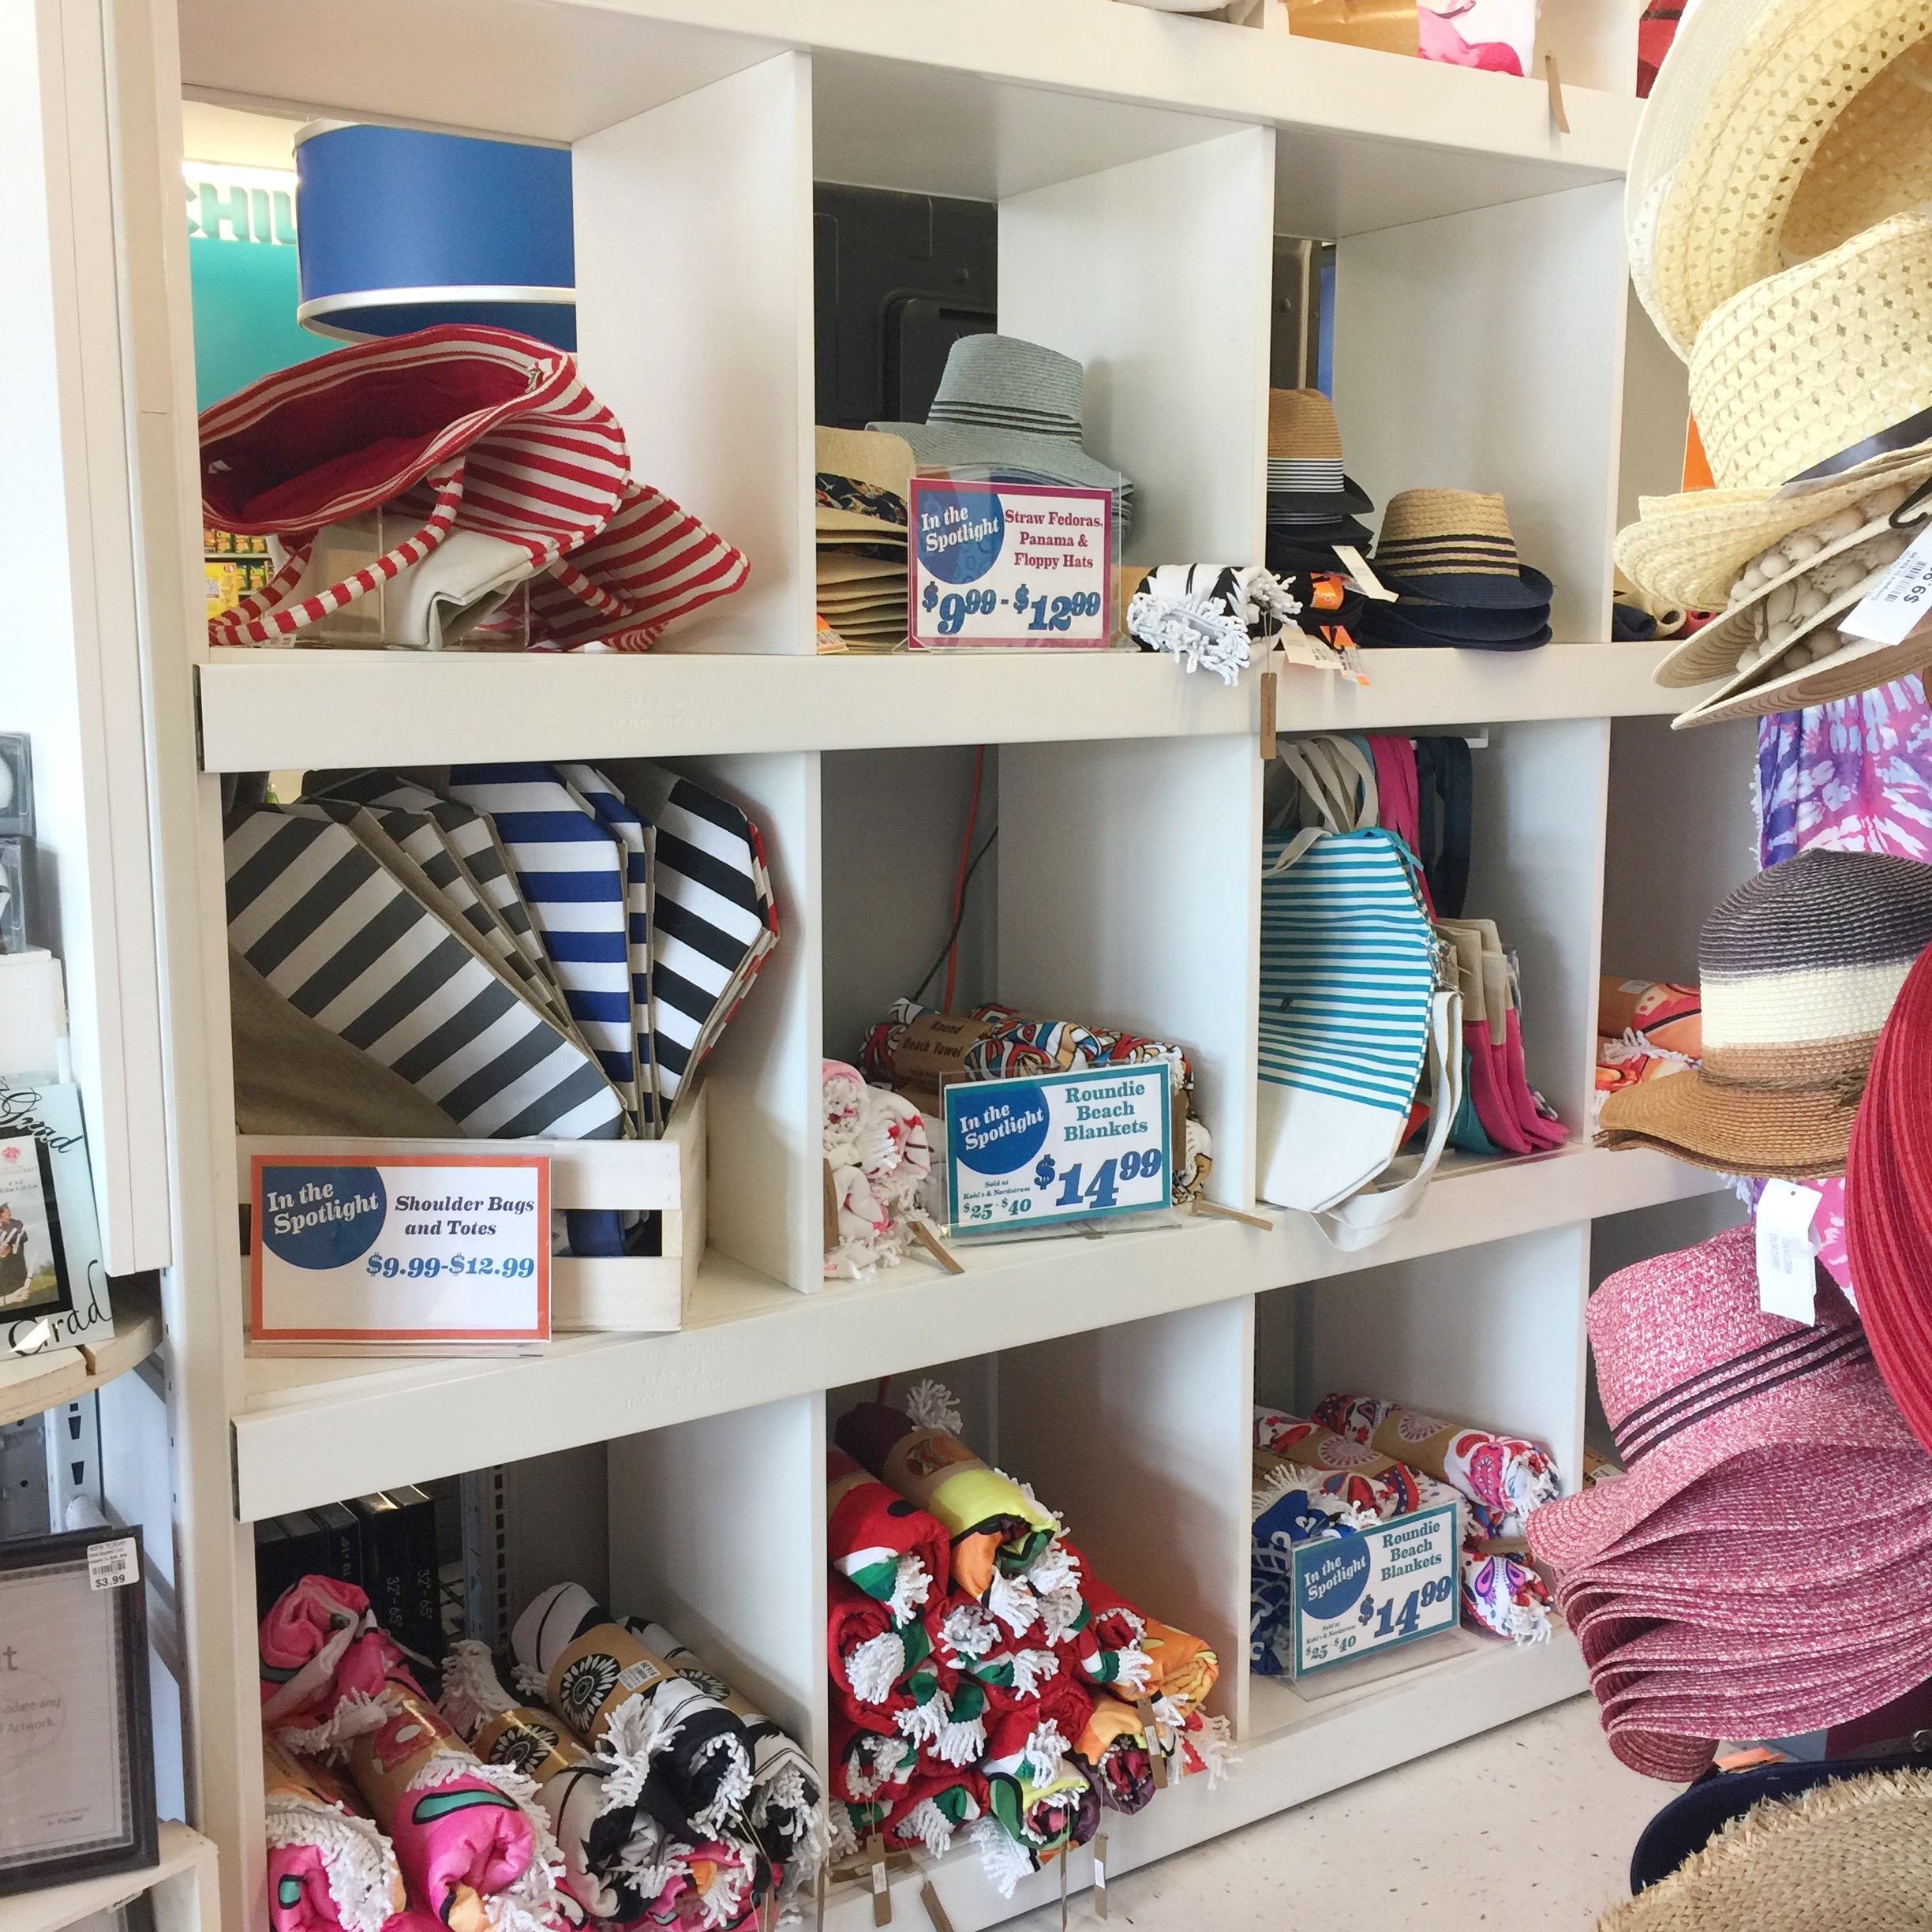 Attractive Here Today Had An Entire Summer Section When I First Walked Into The Store.  You Can Stock Up On Your Summer Hats, Flip Flops, Coverups, Beach Bags And  ...